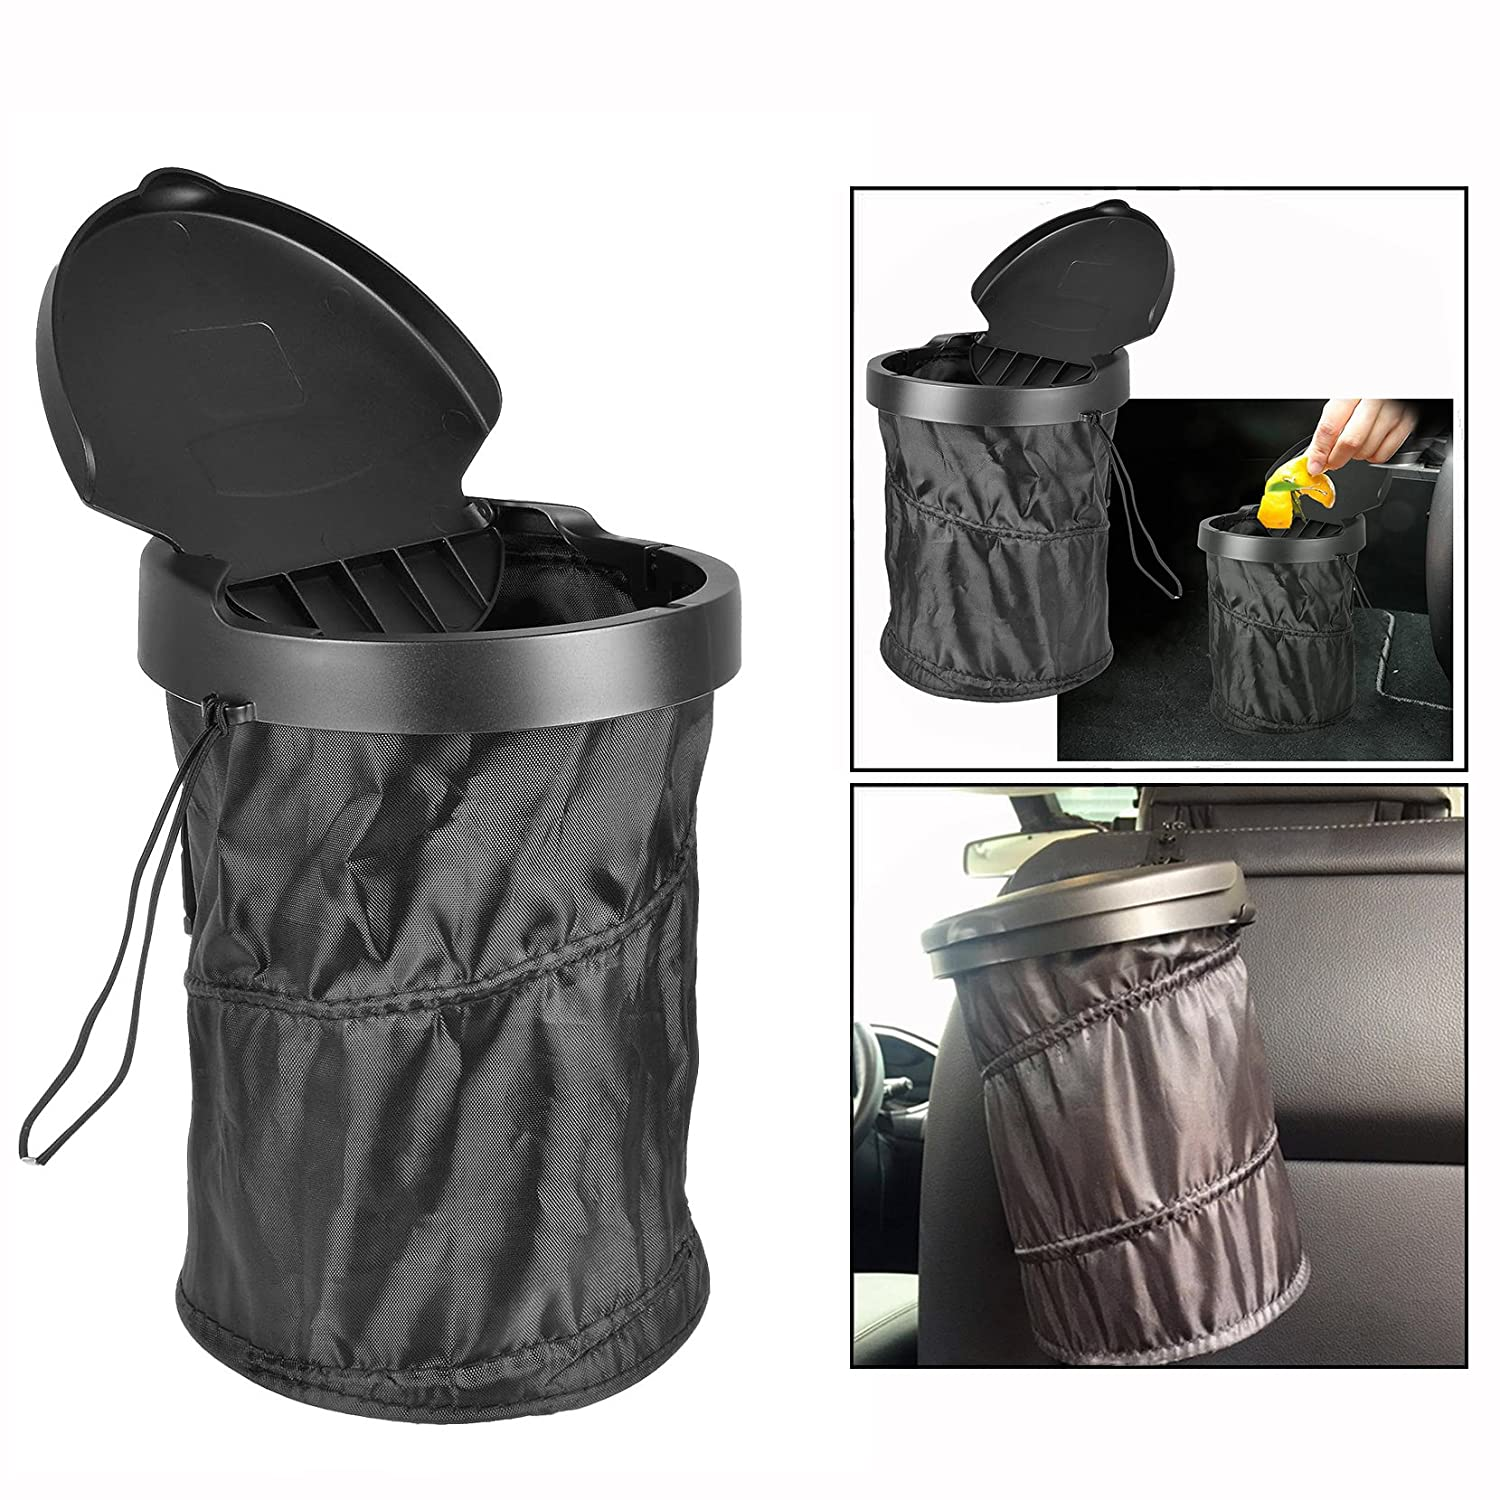 OFKPO Lightweight Multifunctional Car Trash Can Traveling Portable Car Trash Can Auto Foldable Car Garbage Holder With Cover(Black)